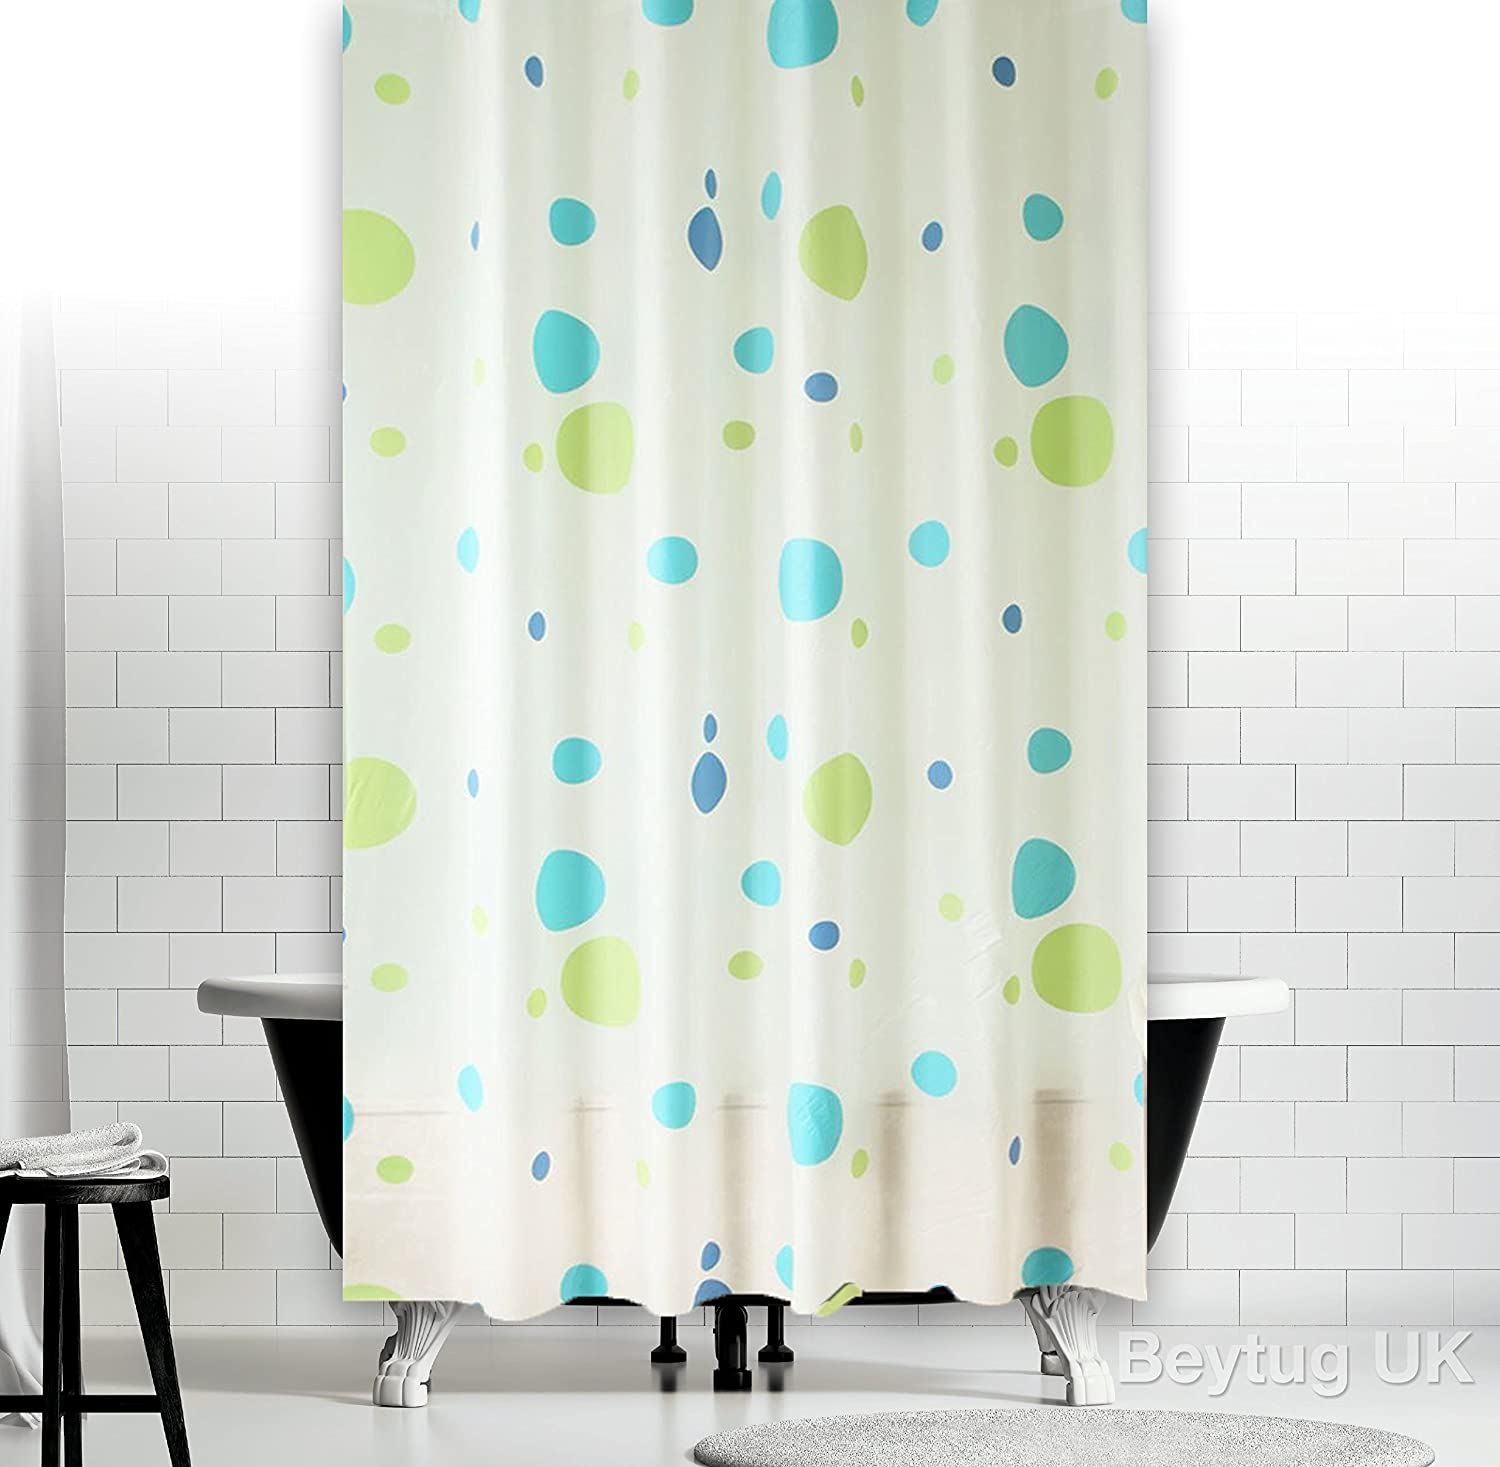 New Funky Bathroom Shower Curtain Extra Long with Rings 180 x 200 cm ...